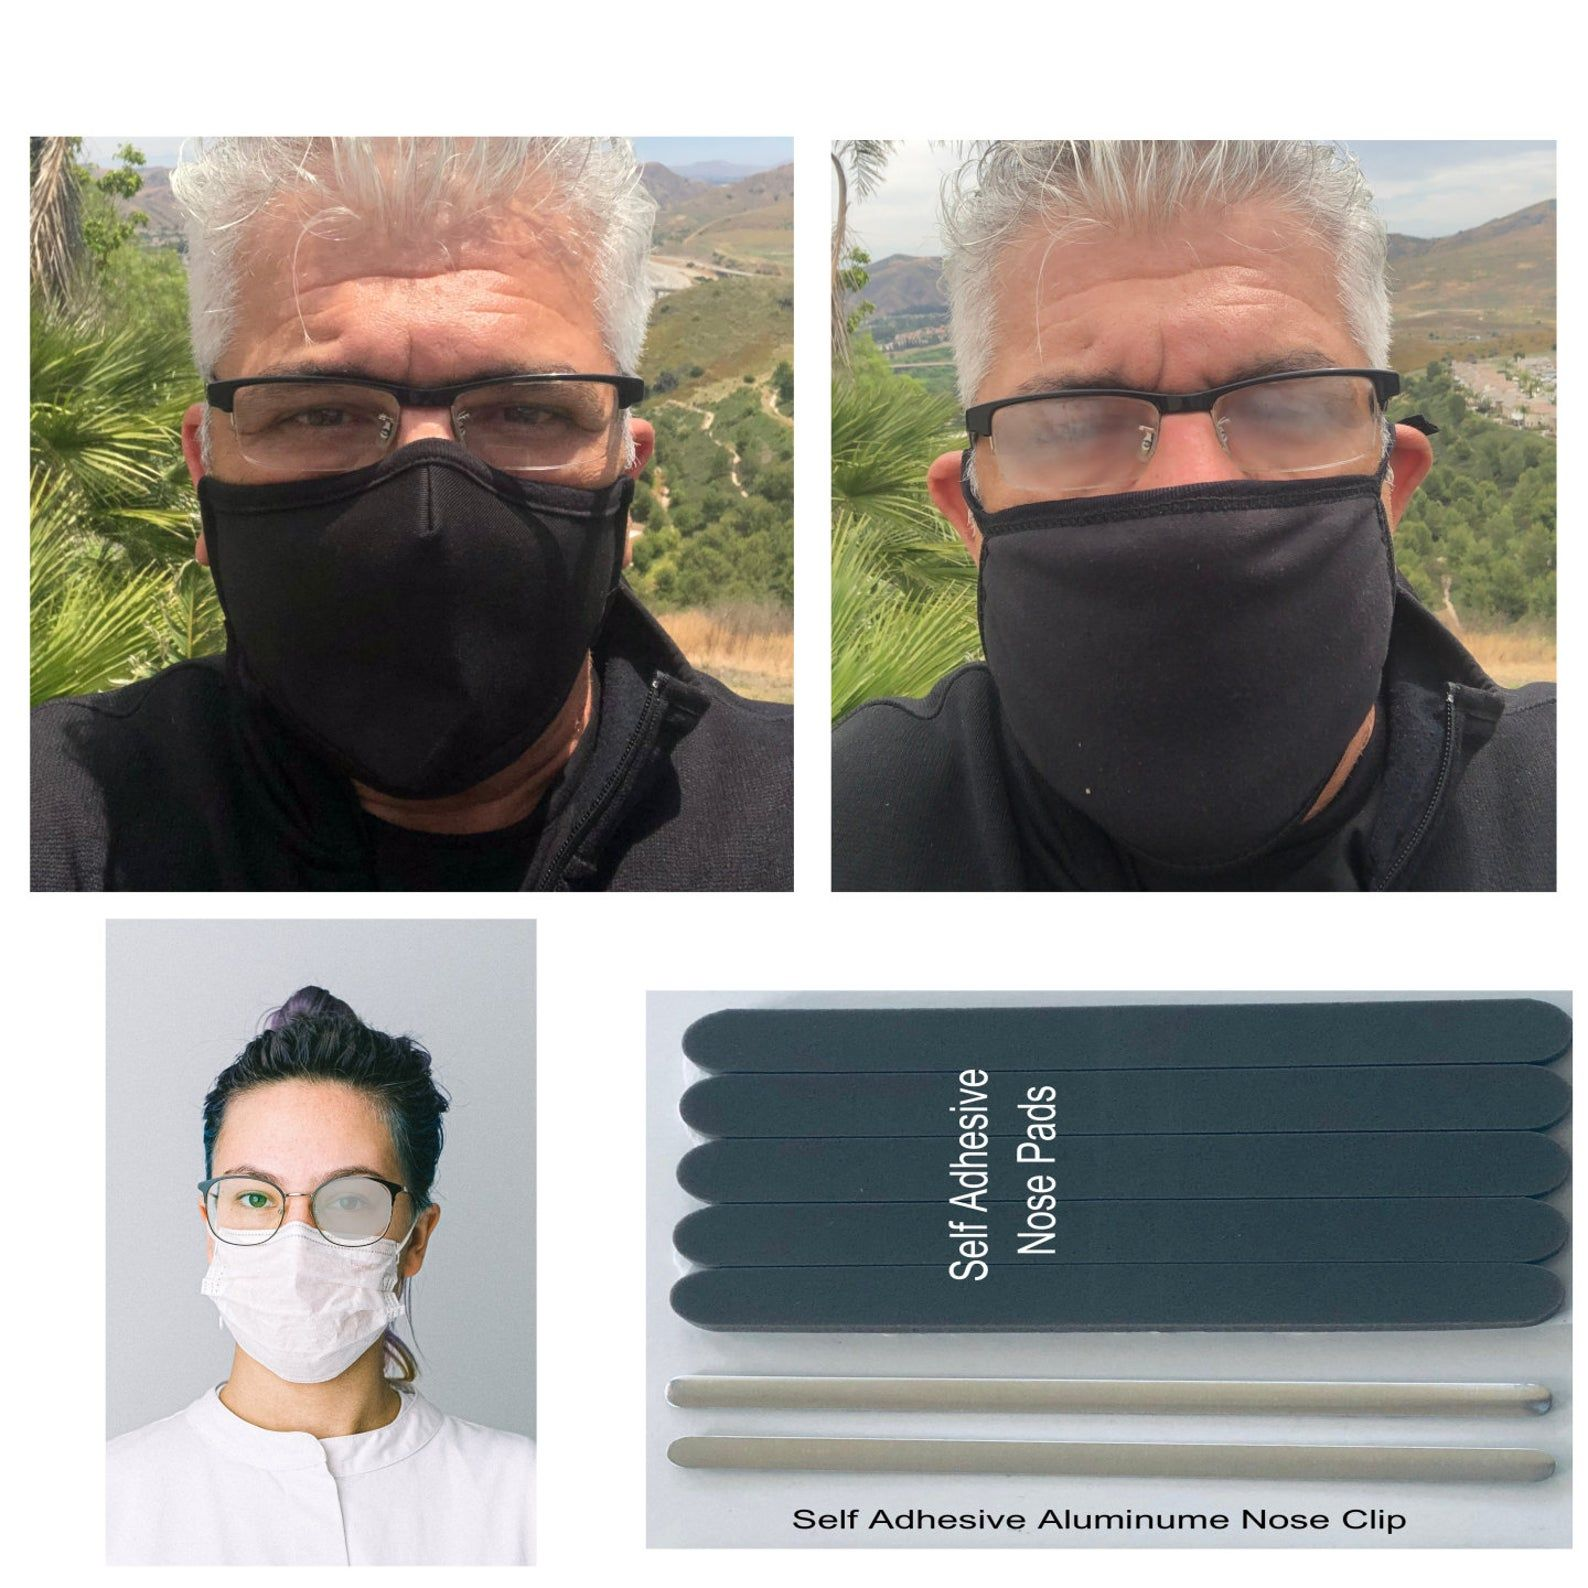 Convert Any Mask to an Anti Fog Mask No more foggy glasses